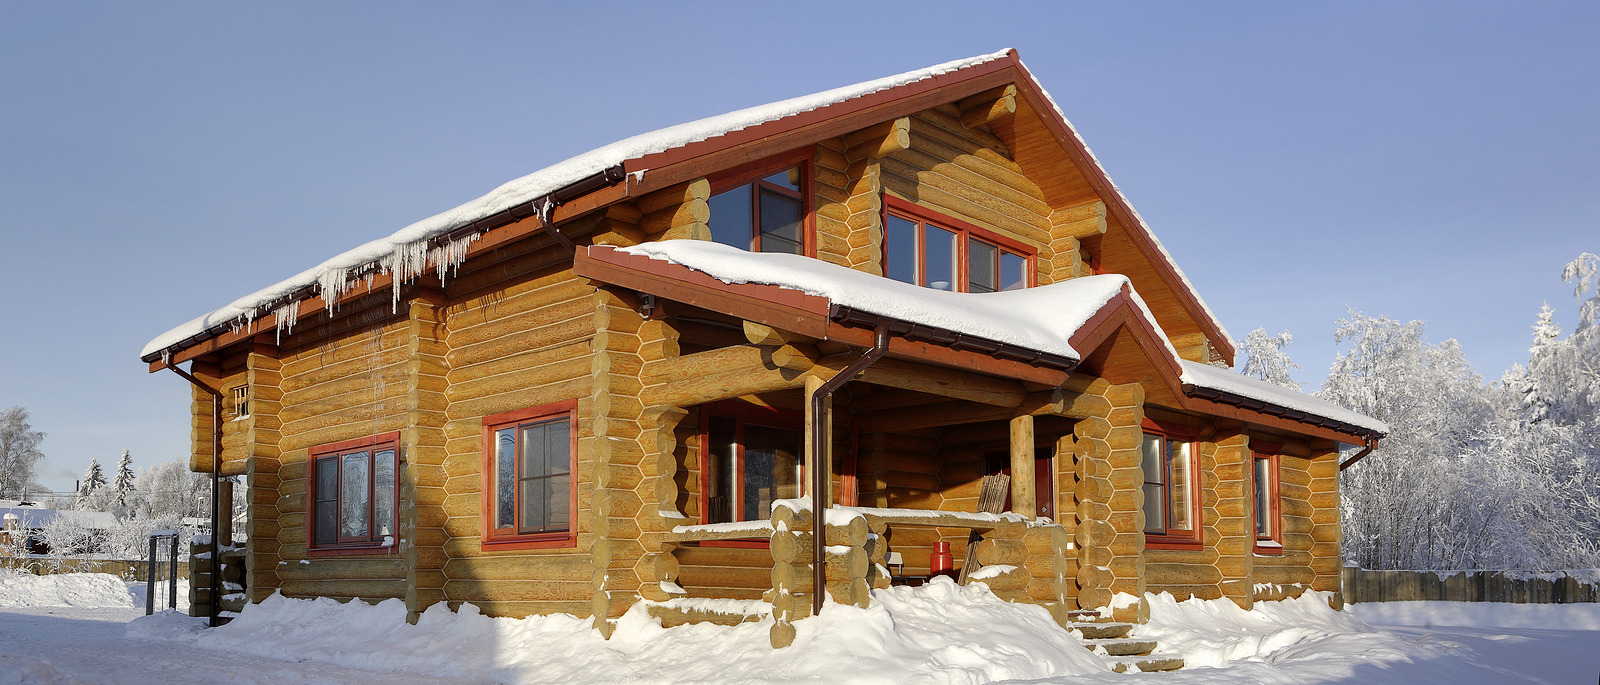 Winter Checklist for Roof and Home